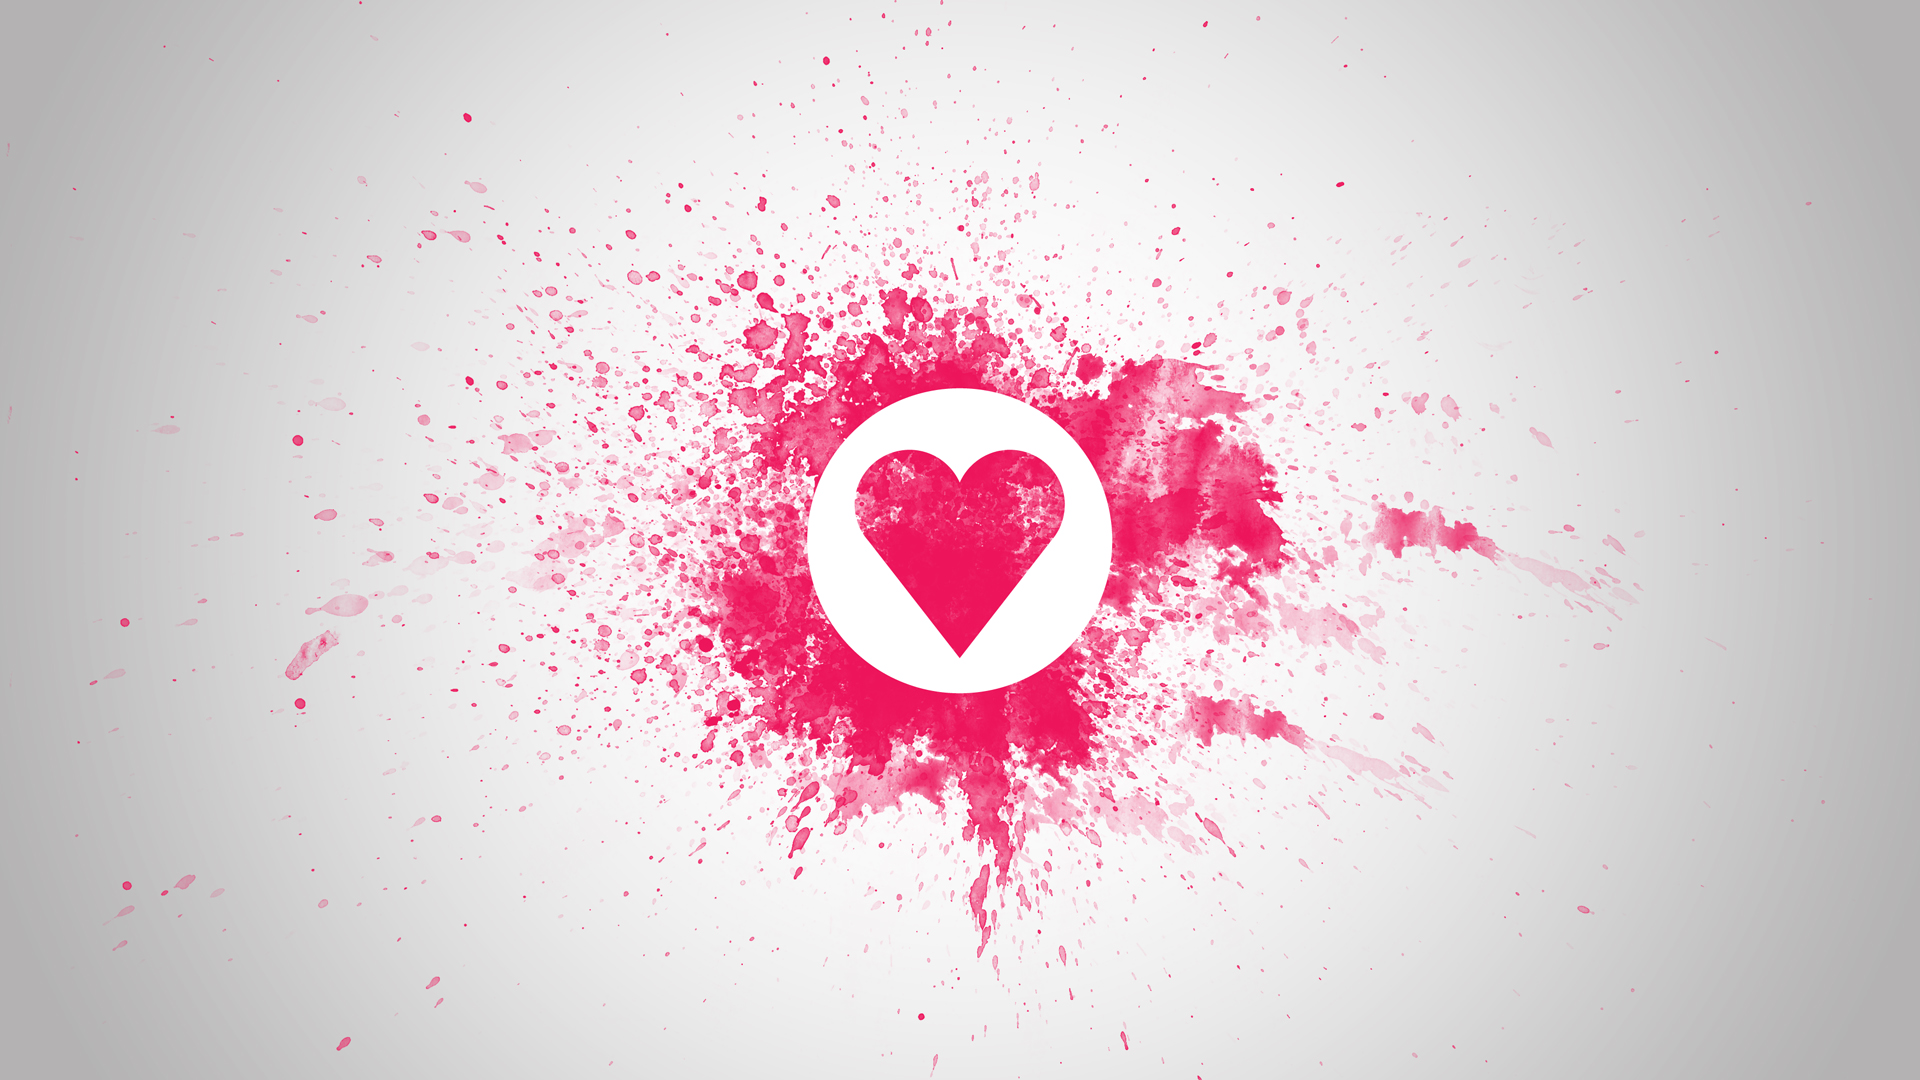 Love Heart PPT Background Background for Powerpoint Program